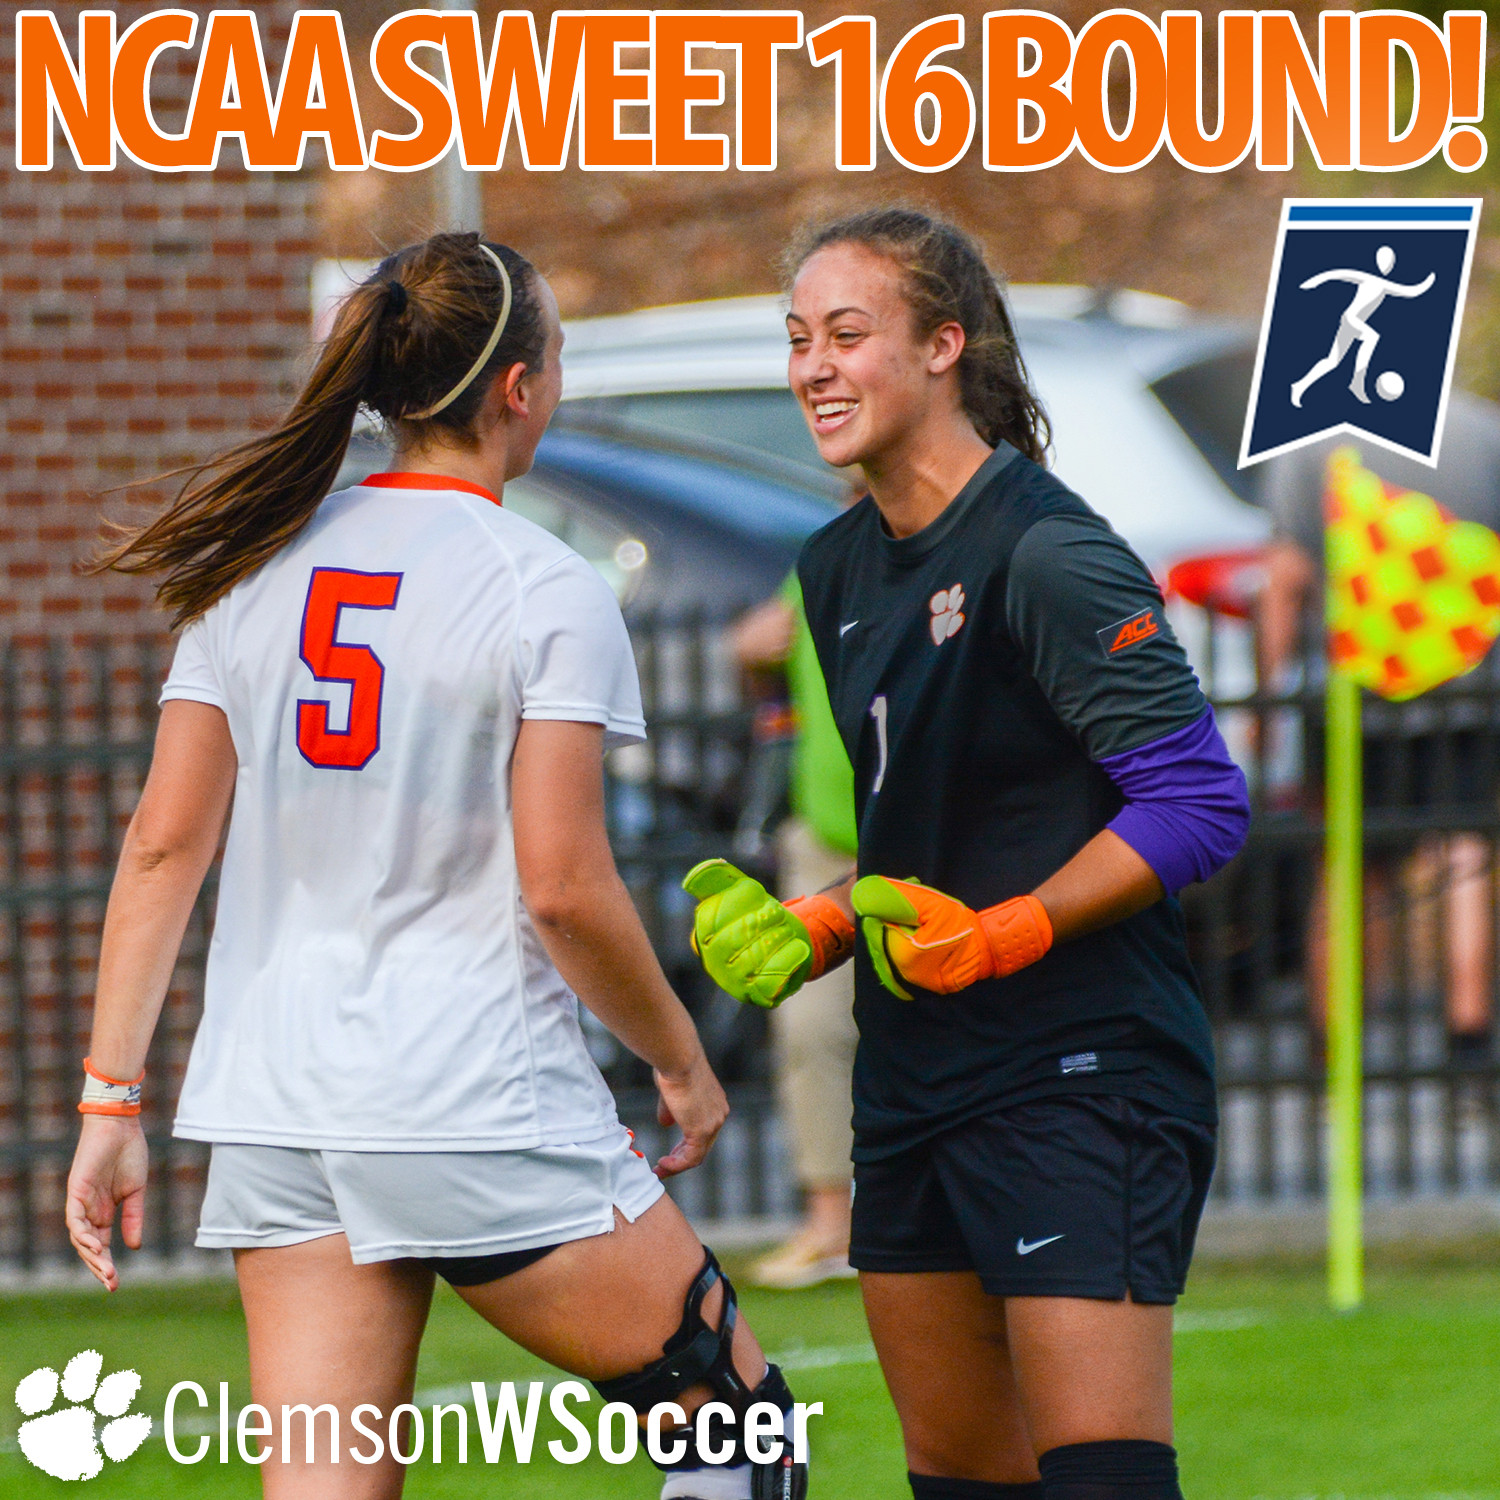 #12 Clemson Headed to NCAA Sweet 16 for First Time in 10 Years after Winning PKs vs. #17 Arkansas